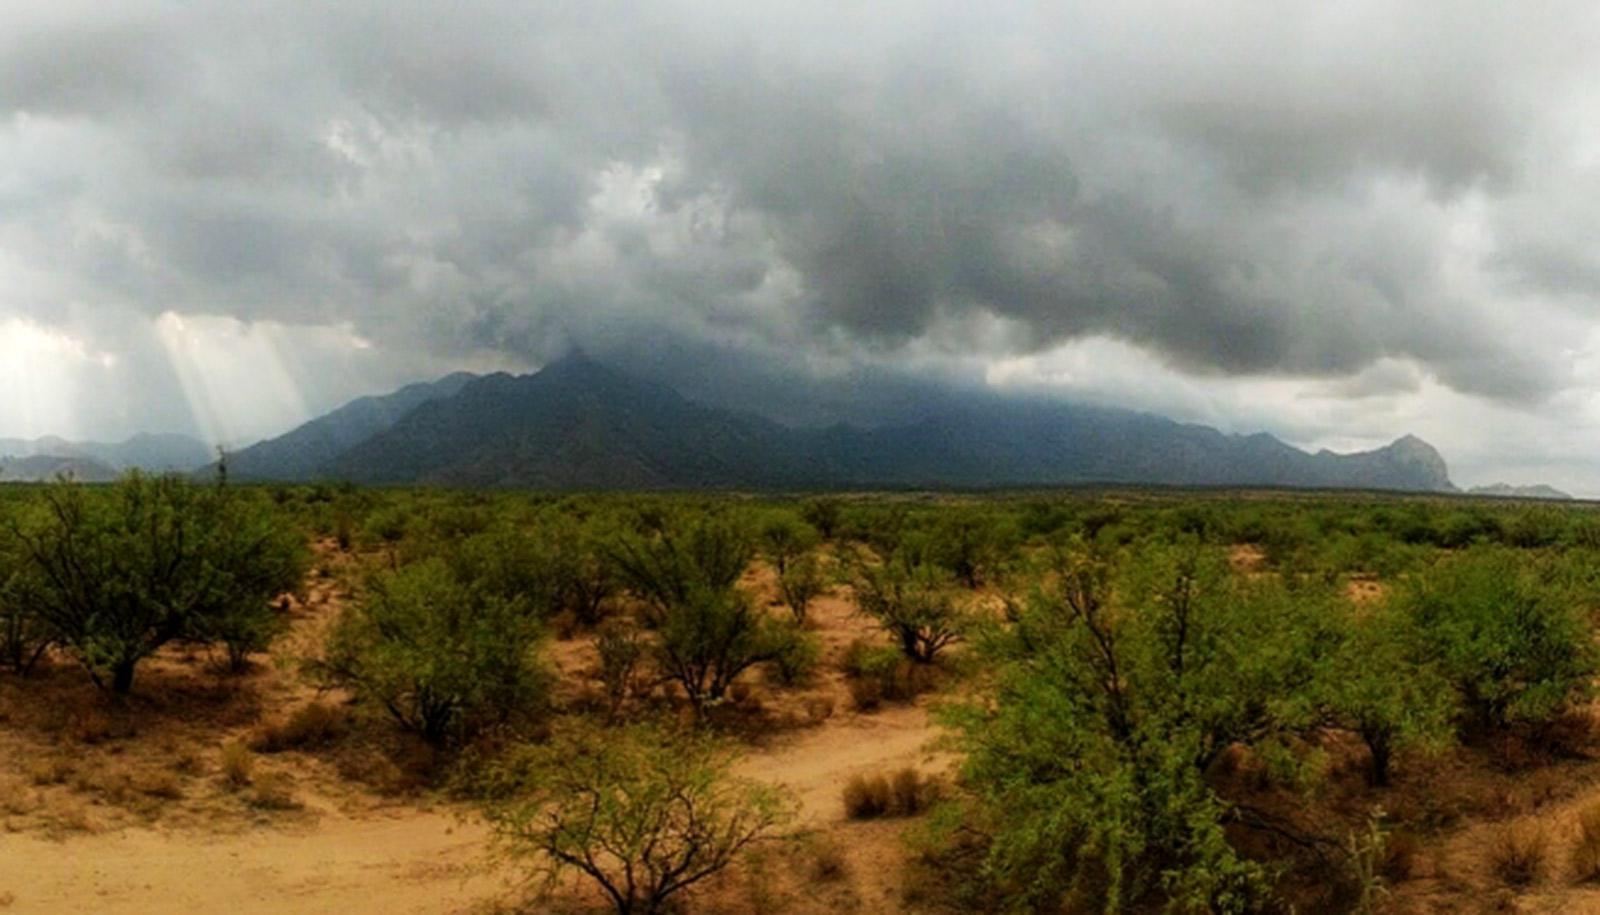 arid landscape with scrubby bushes in foreground; mountains with monsoon clouds in background